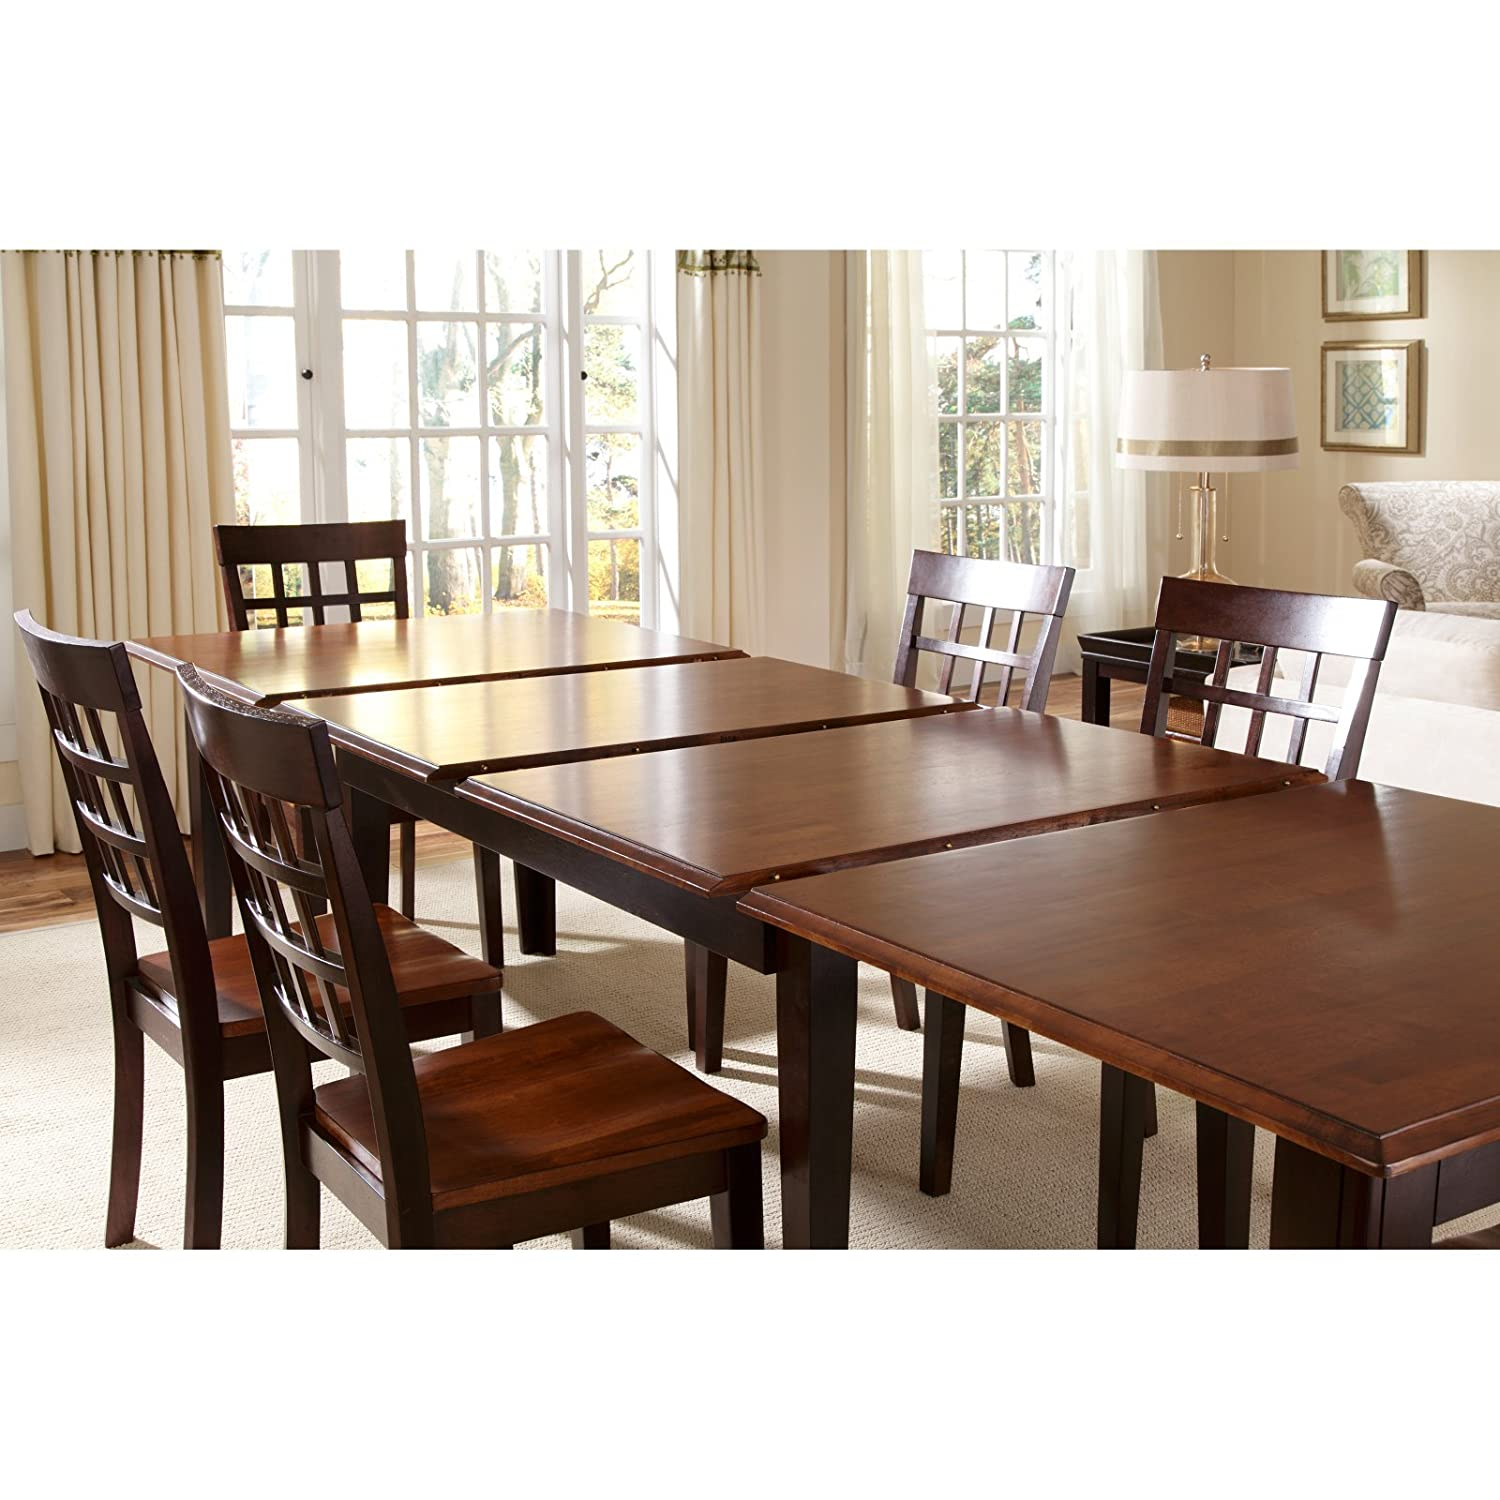 "Amazon A America Bristol Point 132"" Rectangular Dining Table"